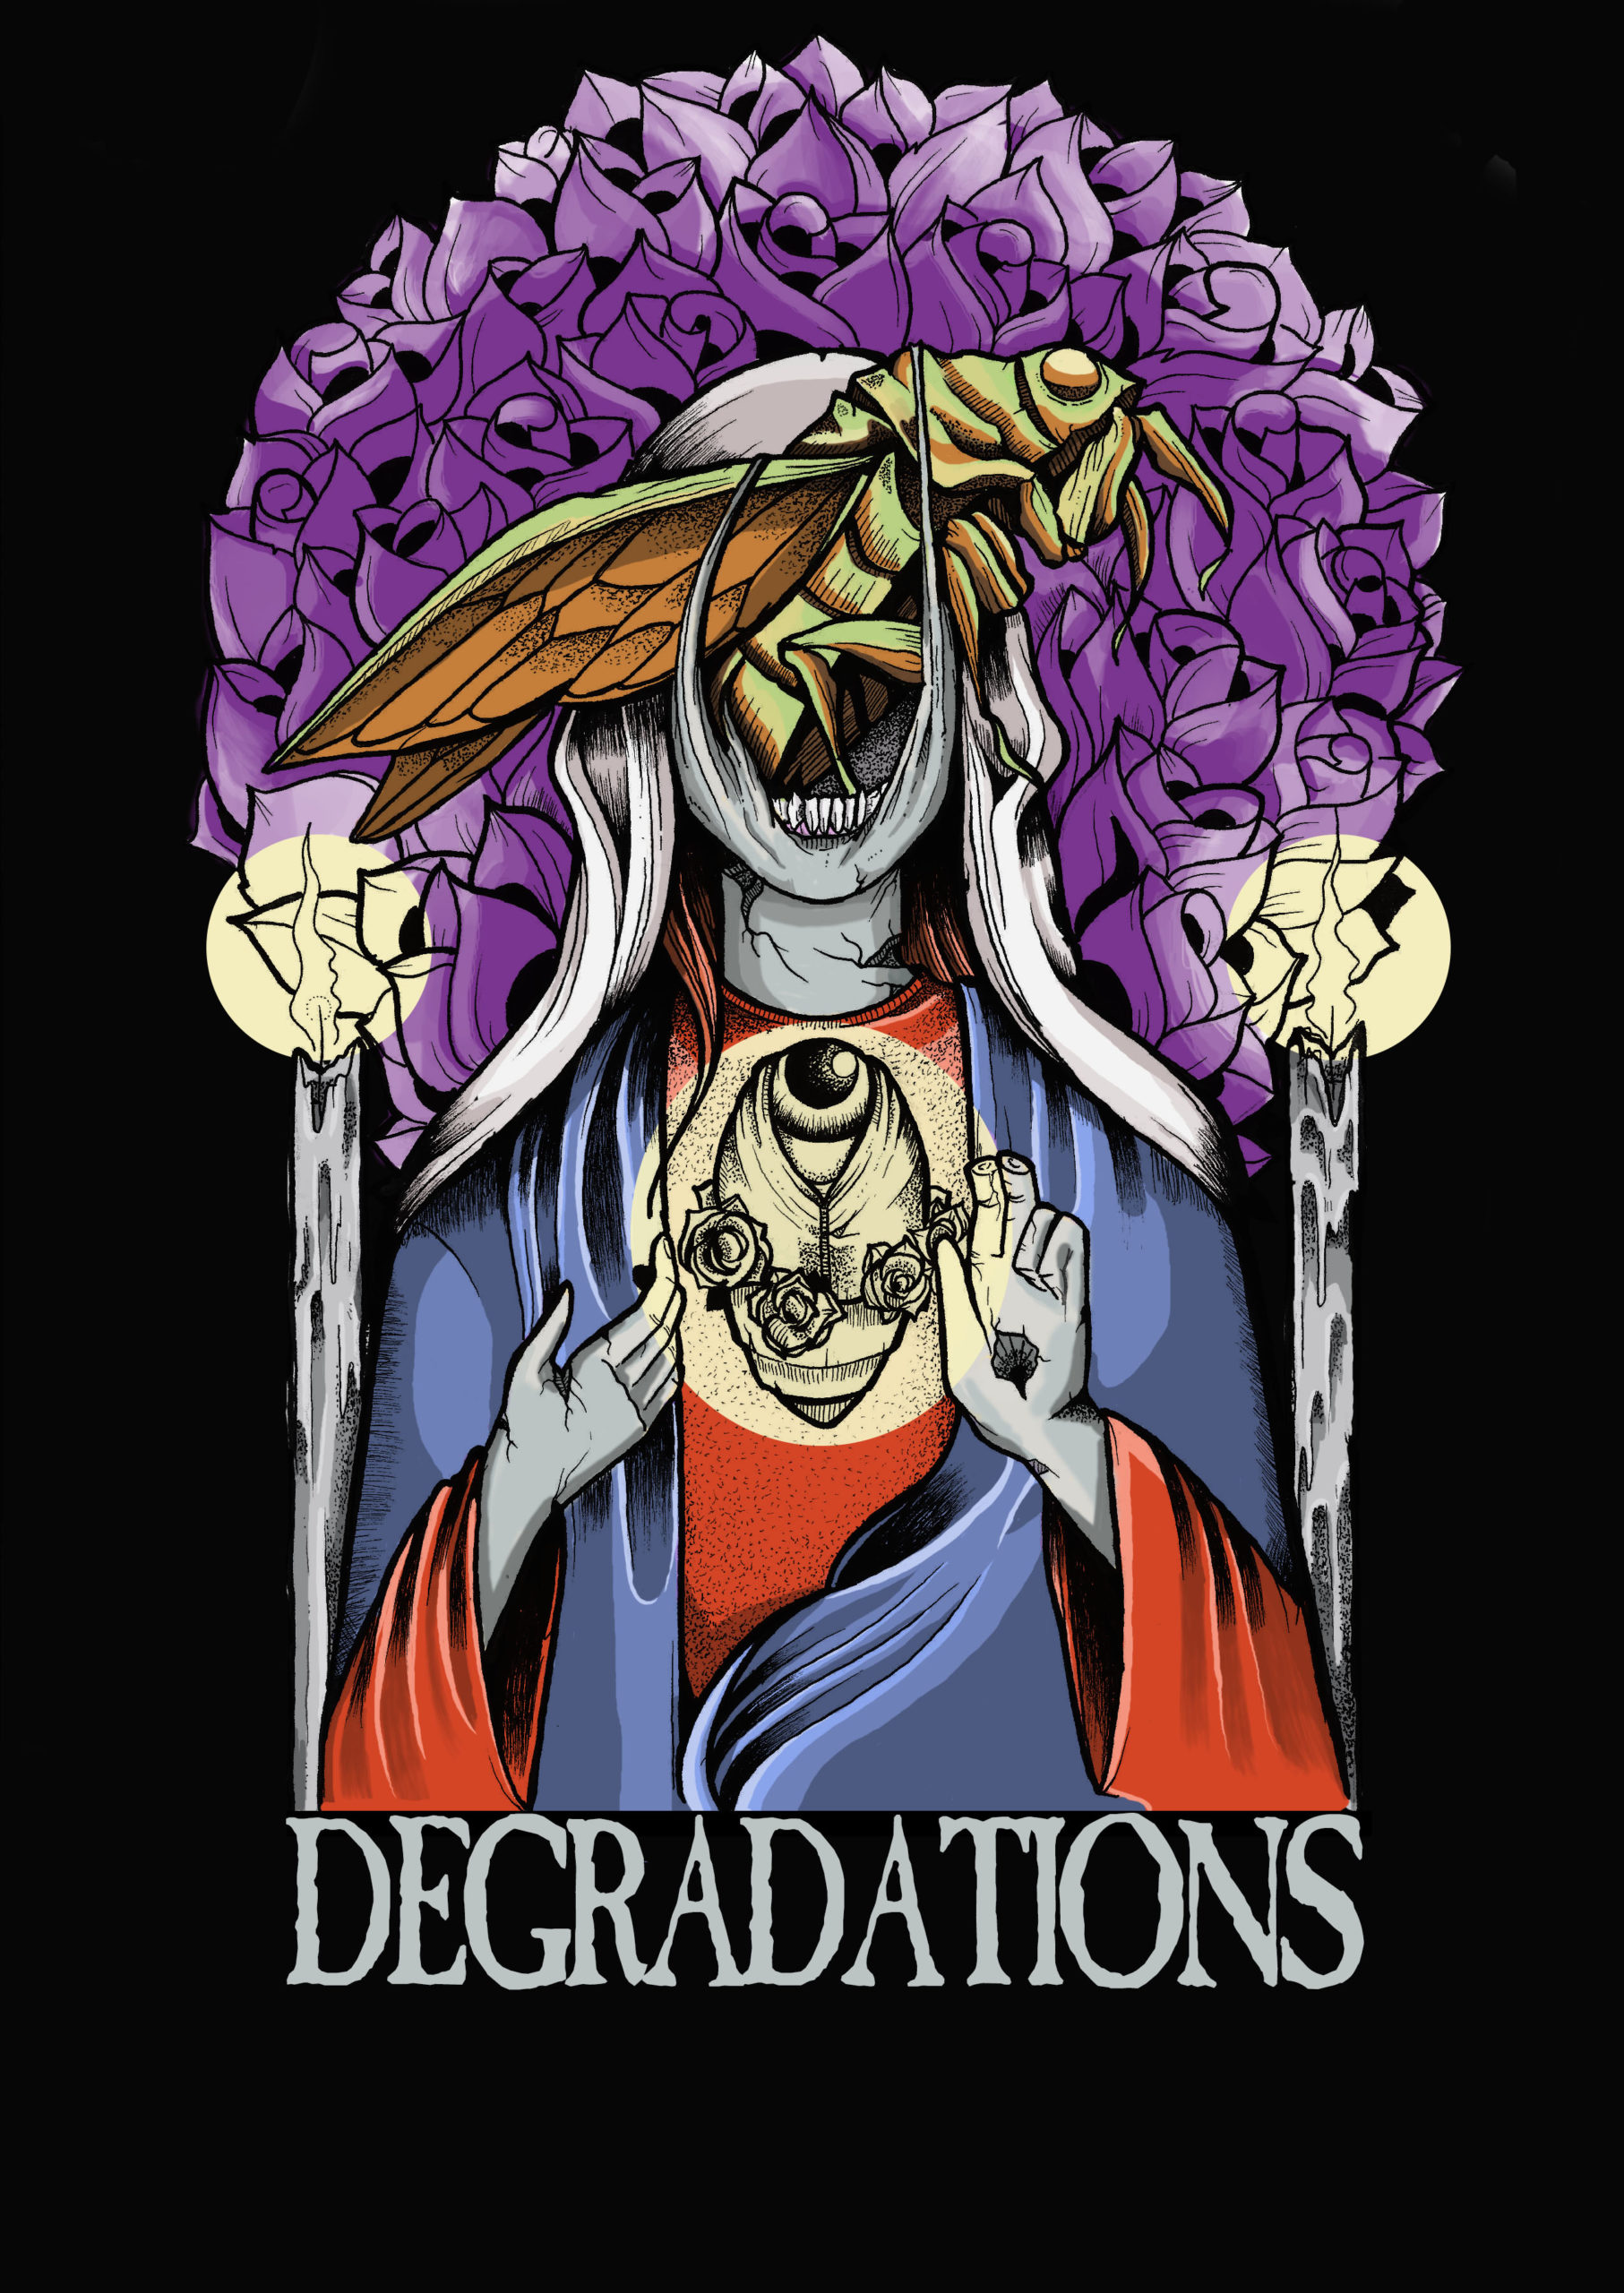 THE GHOST GENERATION X DEGRADATIONS/INTERVIEW